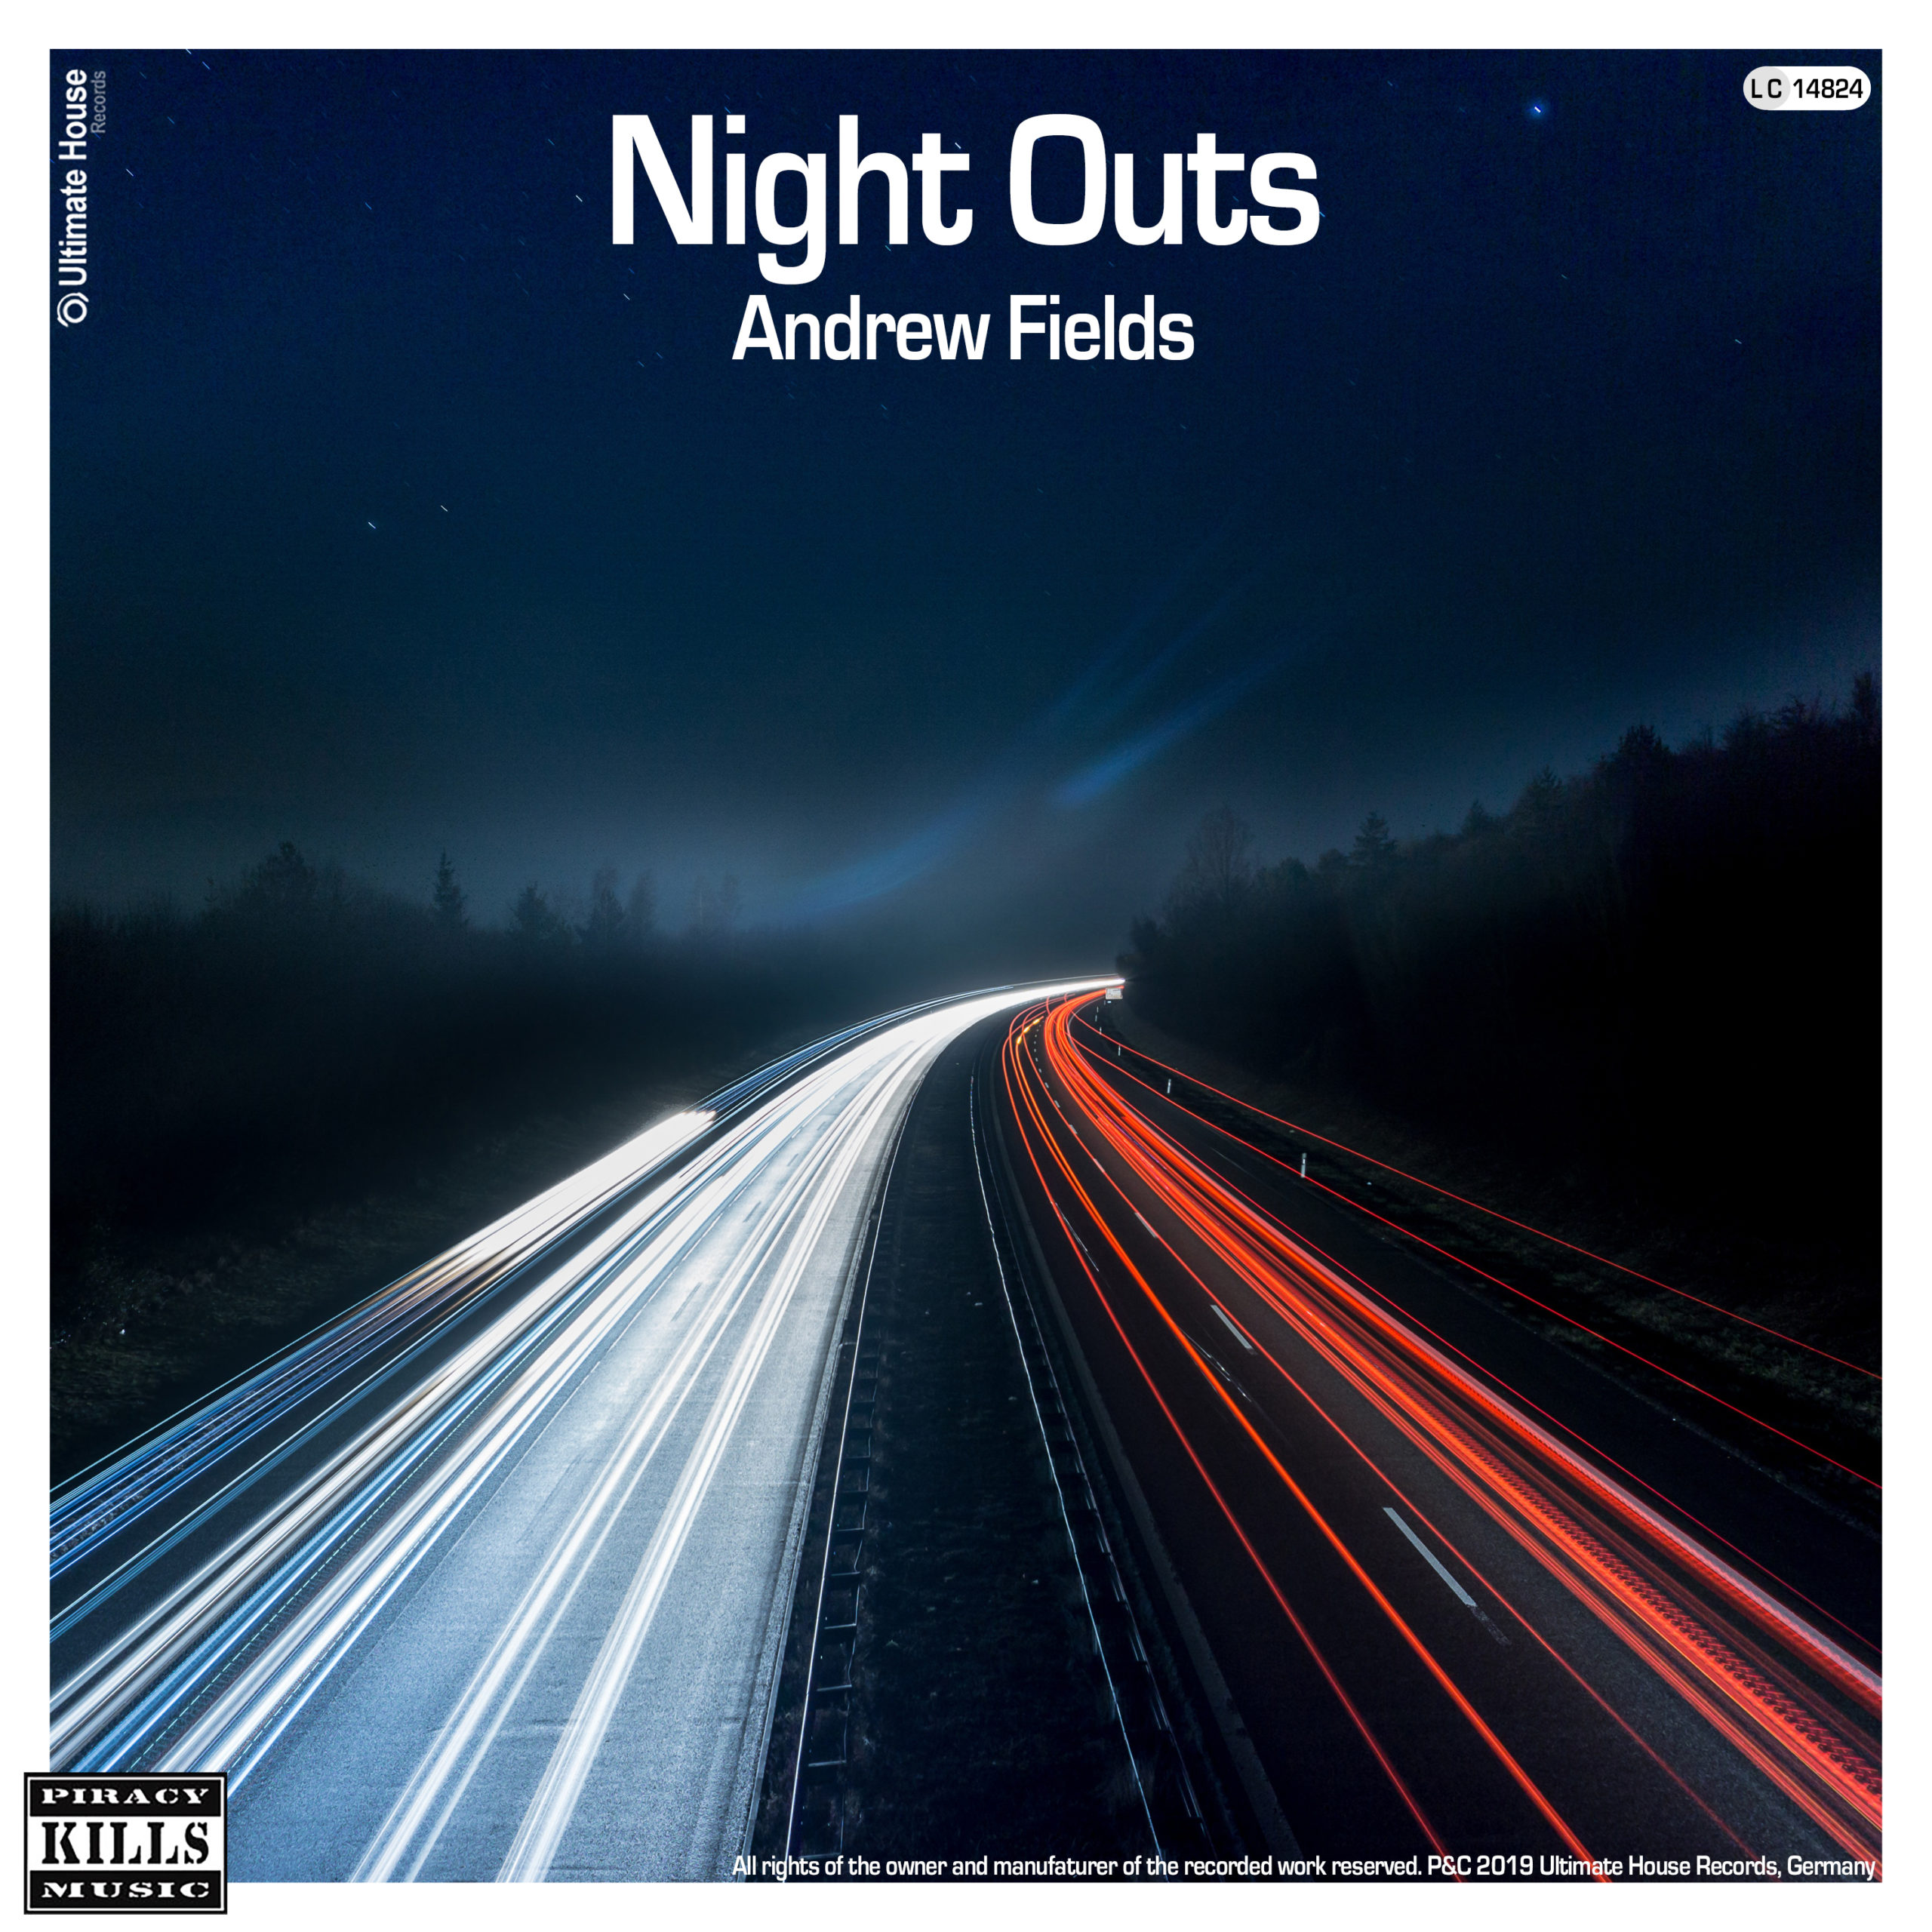 https://www.ultimate-house-records.com/wp-content/uploads/2019/12/134-Andrew_Fields-Night_Outs-Cover_3000px-scaled.jpg